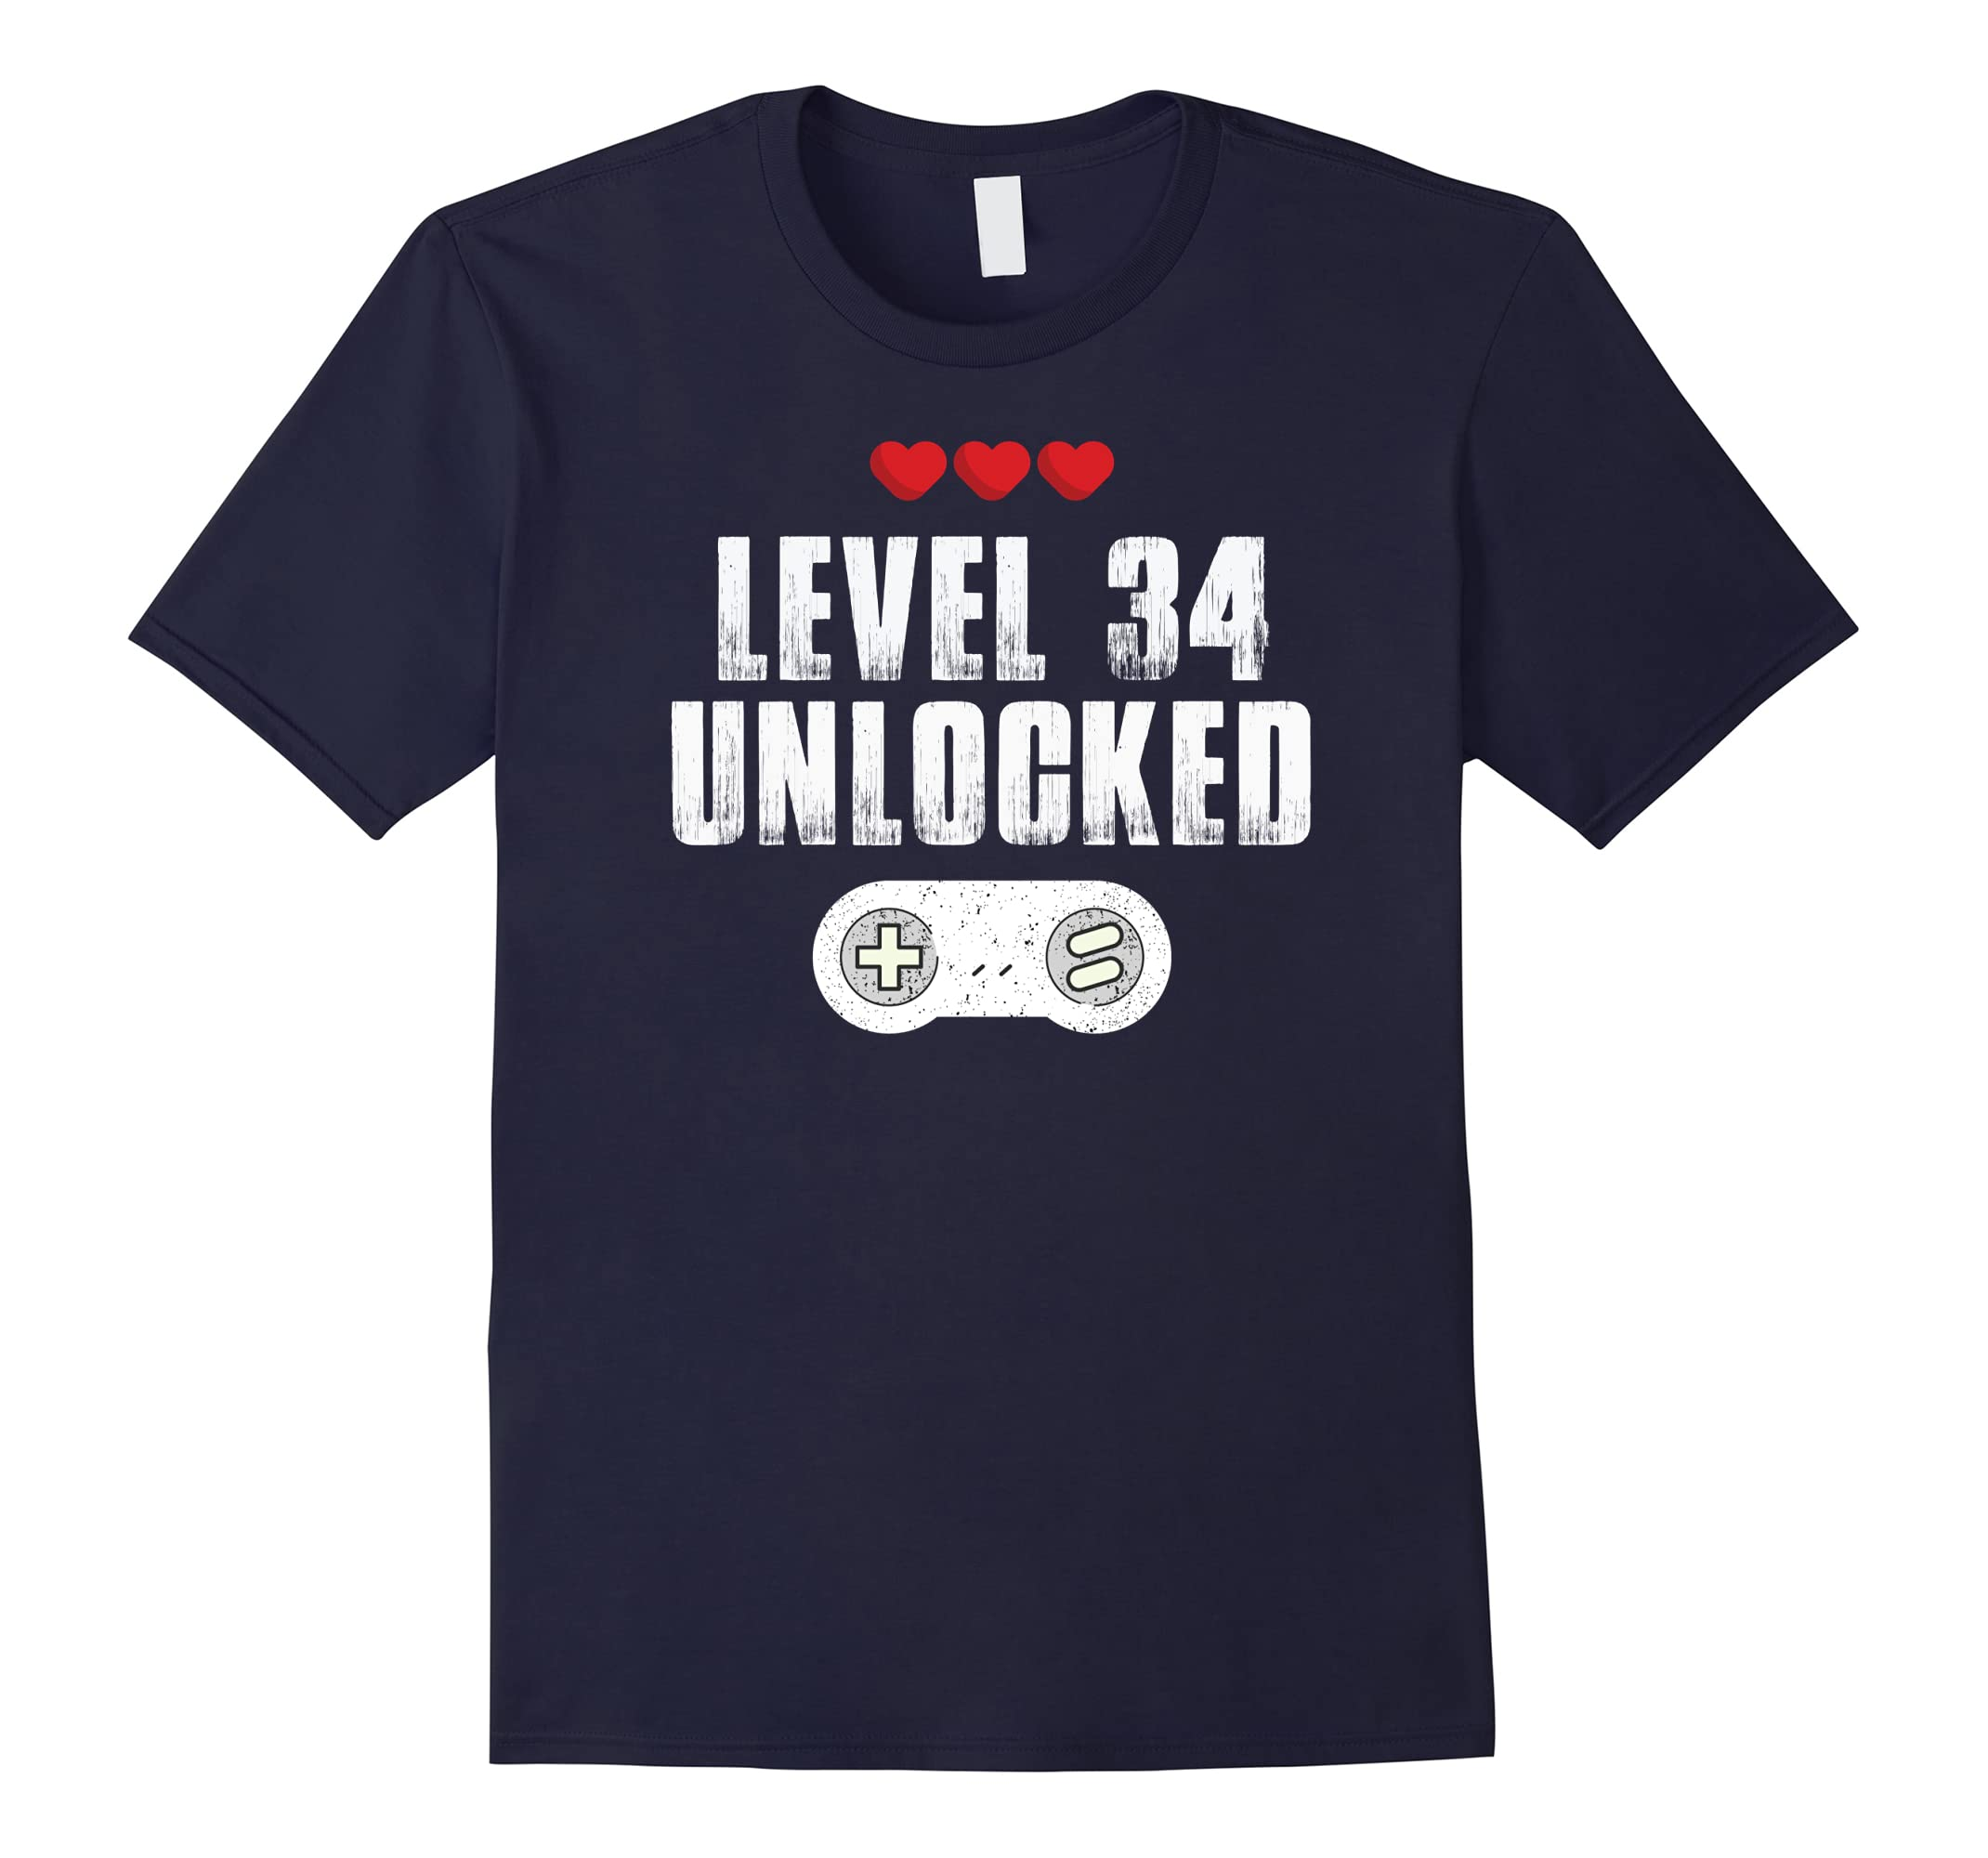 34th Birthday Gift Shirts For Men & Women, Level 34 Unlocked-ah my shirt one gift